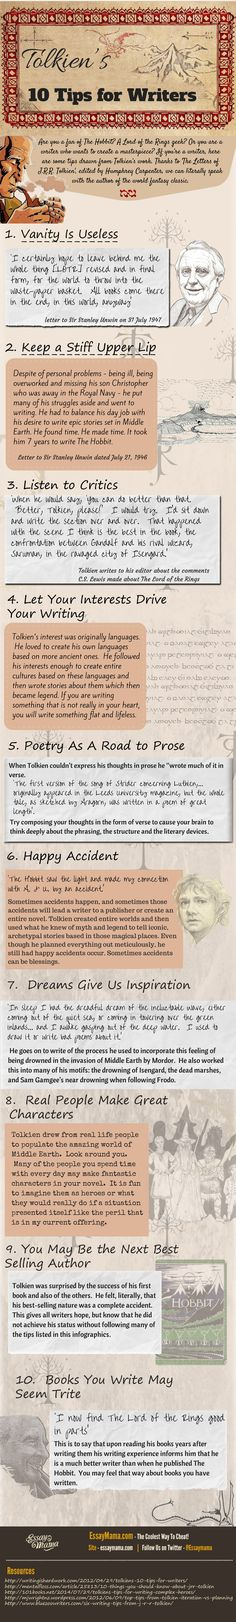 Tolkien's advice for writers